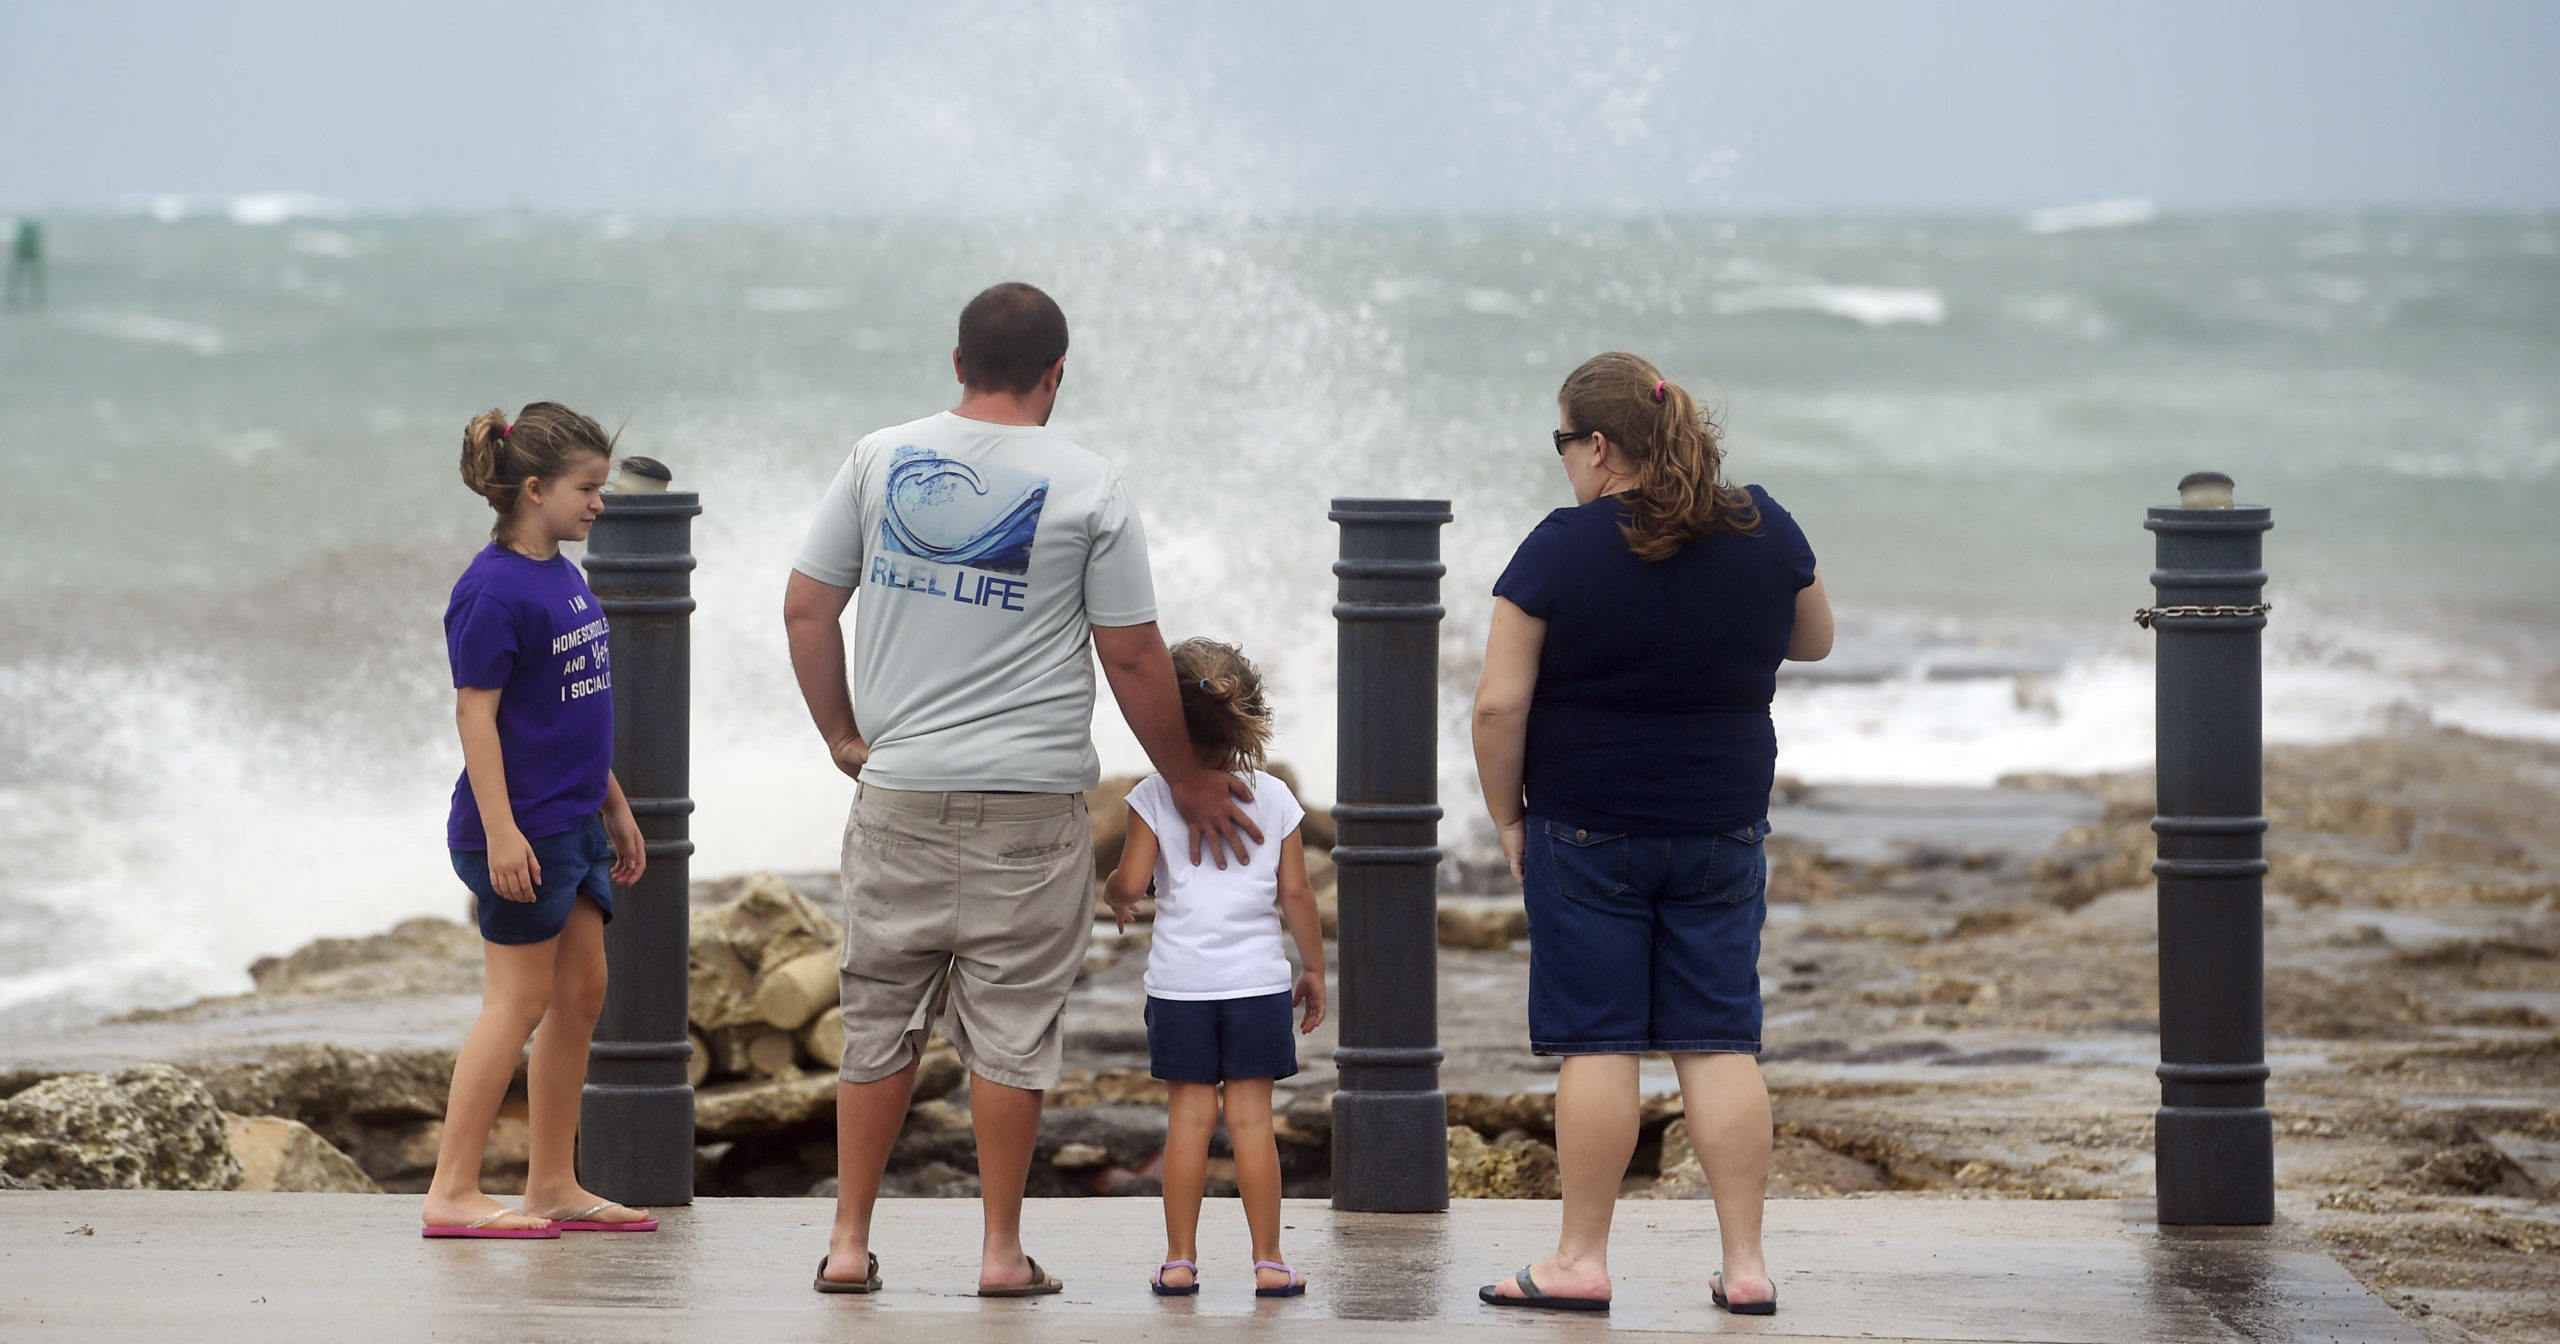 Elizabeth Whittemore (from left), along with her father James, sister Jordan and mother Susan, stand at the end of the South Jetty in Fort Pierce on Aug. 2, 2020, watching the waves crash over the rocks brought by the high winds of Tropical Storm Isaias churning off the coast.